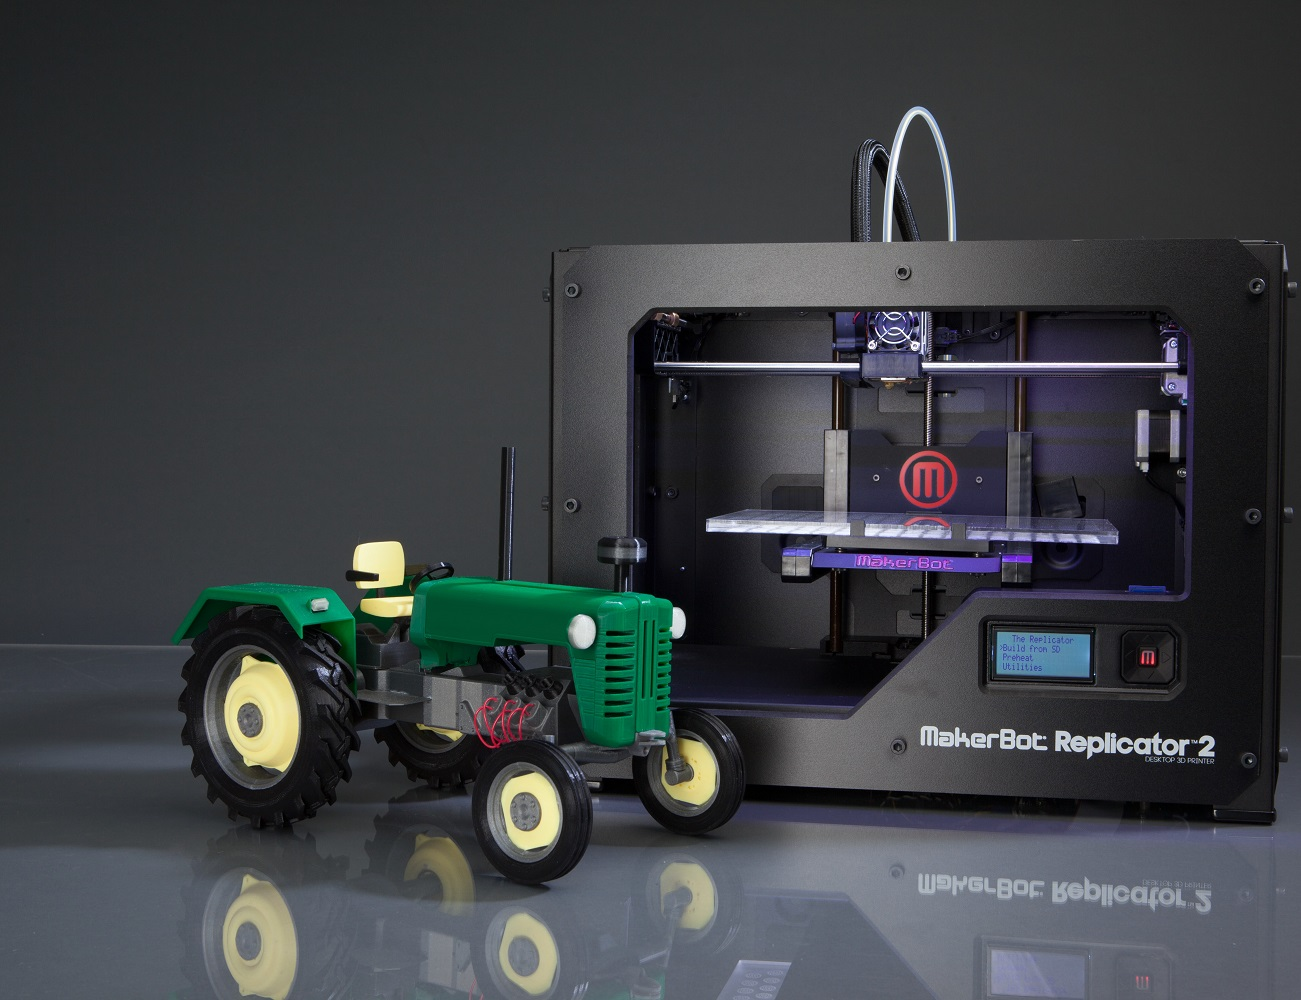 Replicator 2 Desktop 3D Printer by MakerBot